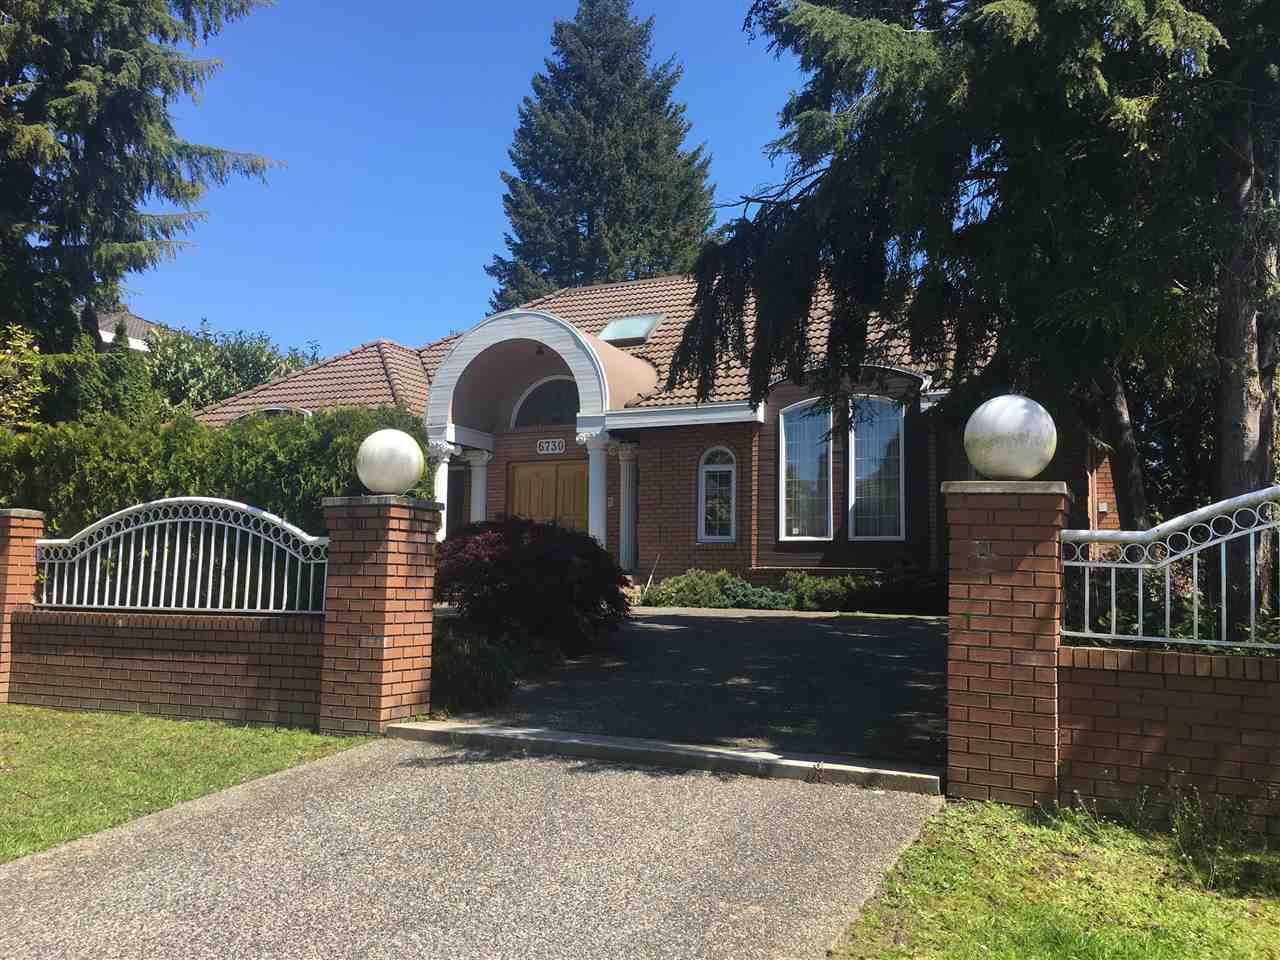 Main Photo: 6730 CHURCHILL Street in Vancouver: South Granville House for sale (Vancouver West)  : MLS®# R2153755